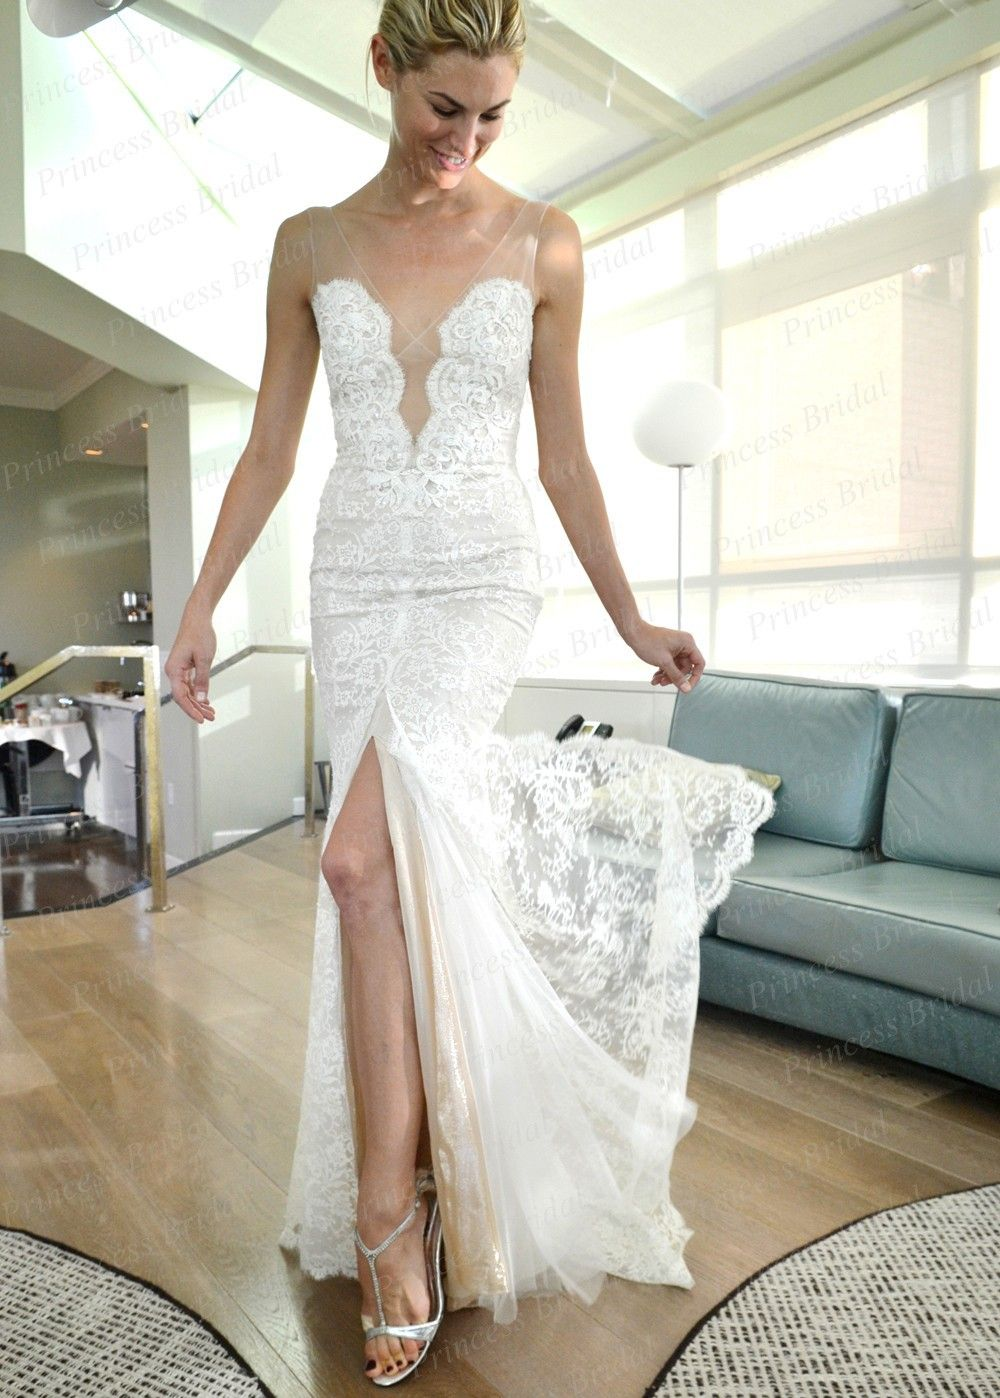 Click to buy 2015 fall bridal wedding gown back low cut fishtail click to buy 2015 fall bridal wedding gown back low cut fishtail ombrellifo Choice Image